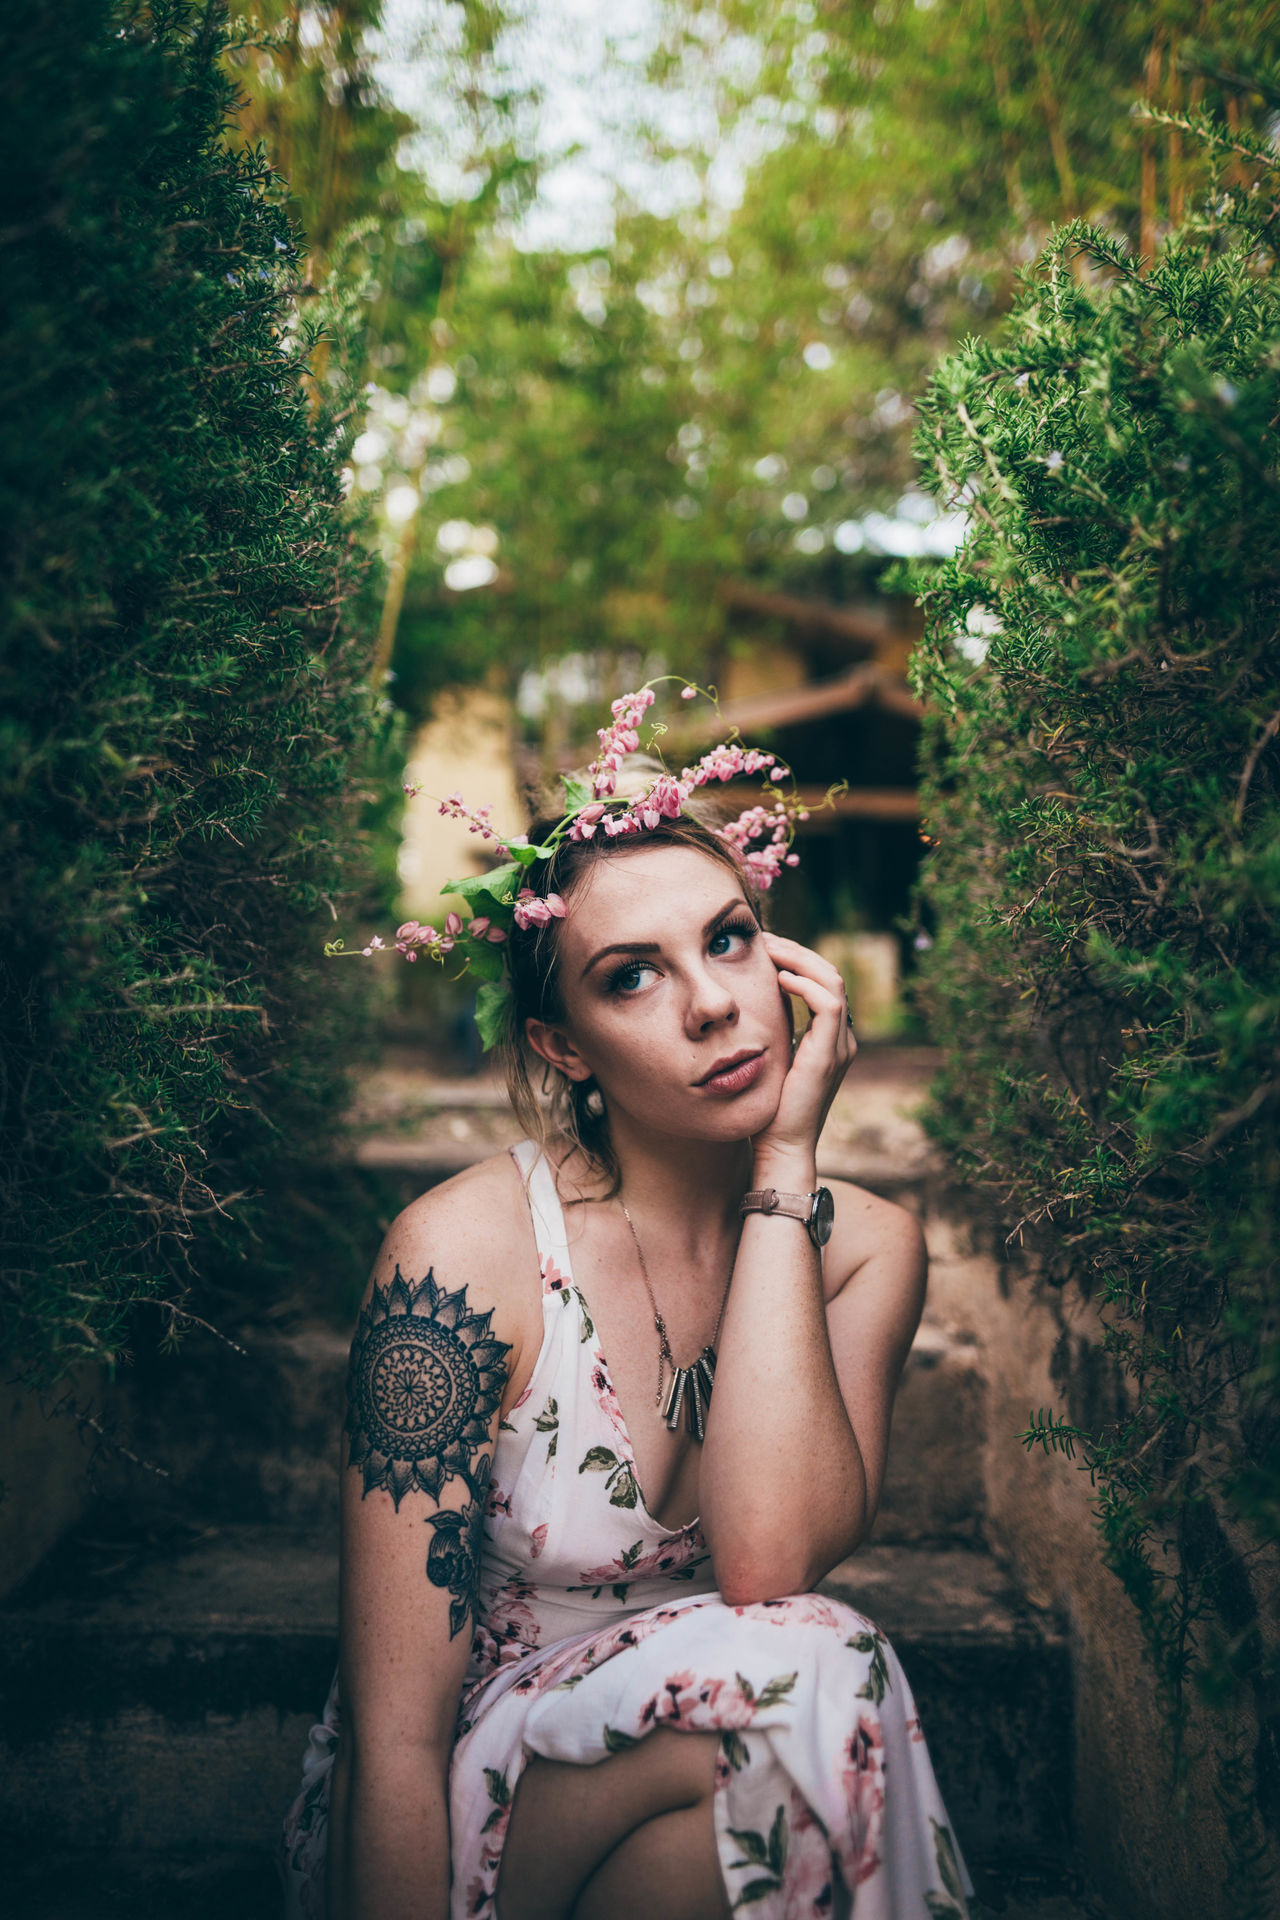 Aspen. Young Adult Beauty Fashion Adult Only Women Adults Only One Young Woman Only People One Woman Only Young Women Beautiful Woman Portrait Old-fashioned One Person Beautiful People Make-up Women Headwear Glamour Nature Live For The Story The Portraitist - 2017 EyeEm Awards